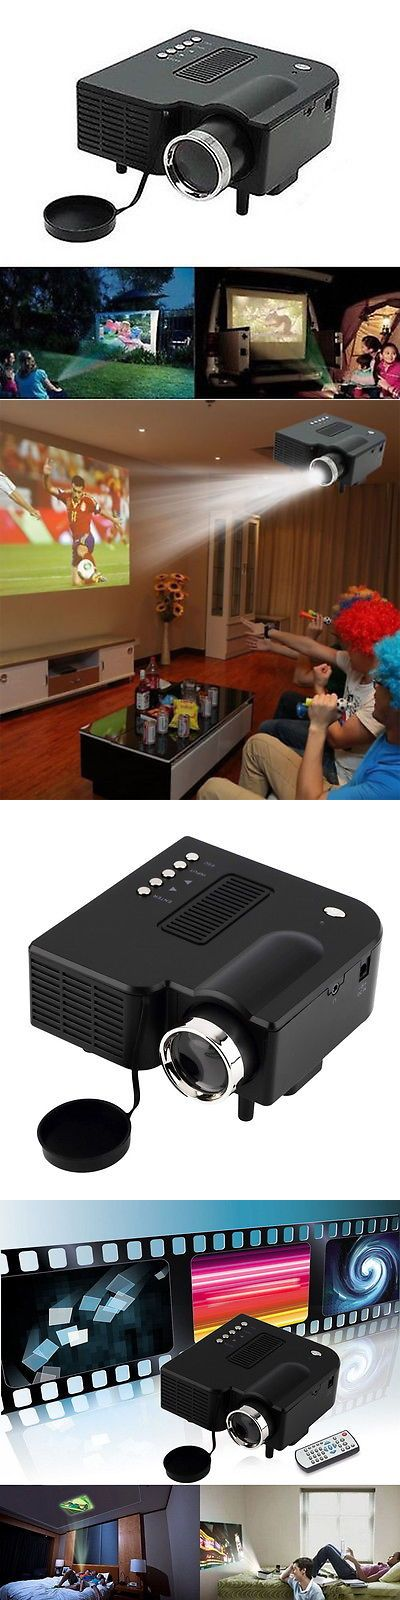 Home Theater Projectors: Mini Portable Home Theater Cinema Proyector Projector Vga Usb Sd Av Hdmi 1080P T BUY IT NOW ONLY: $34.89